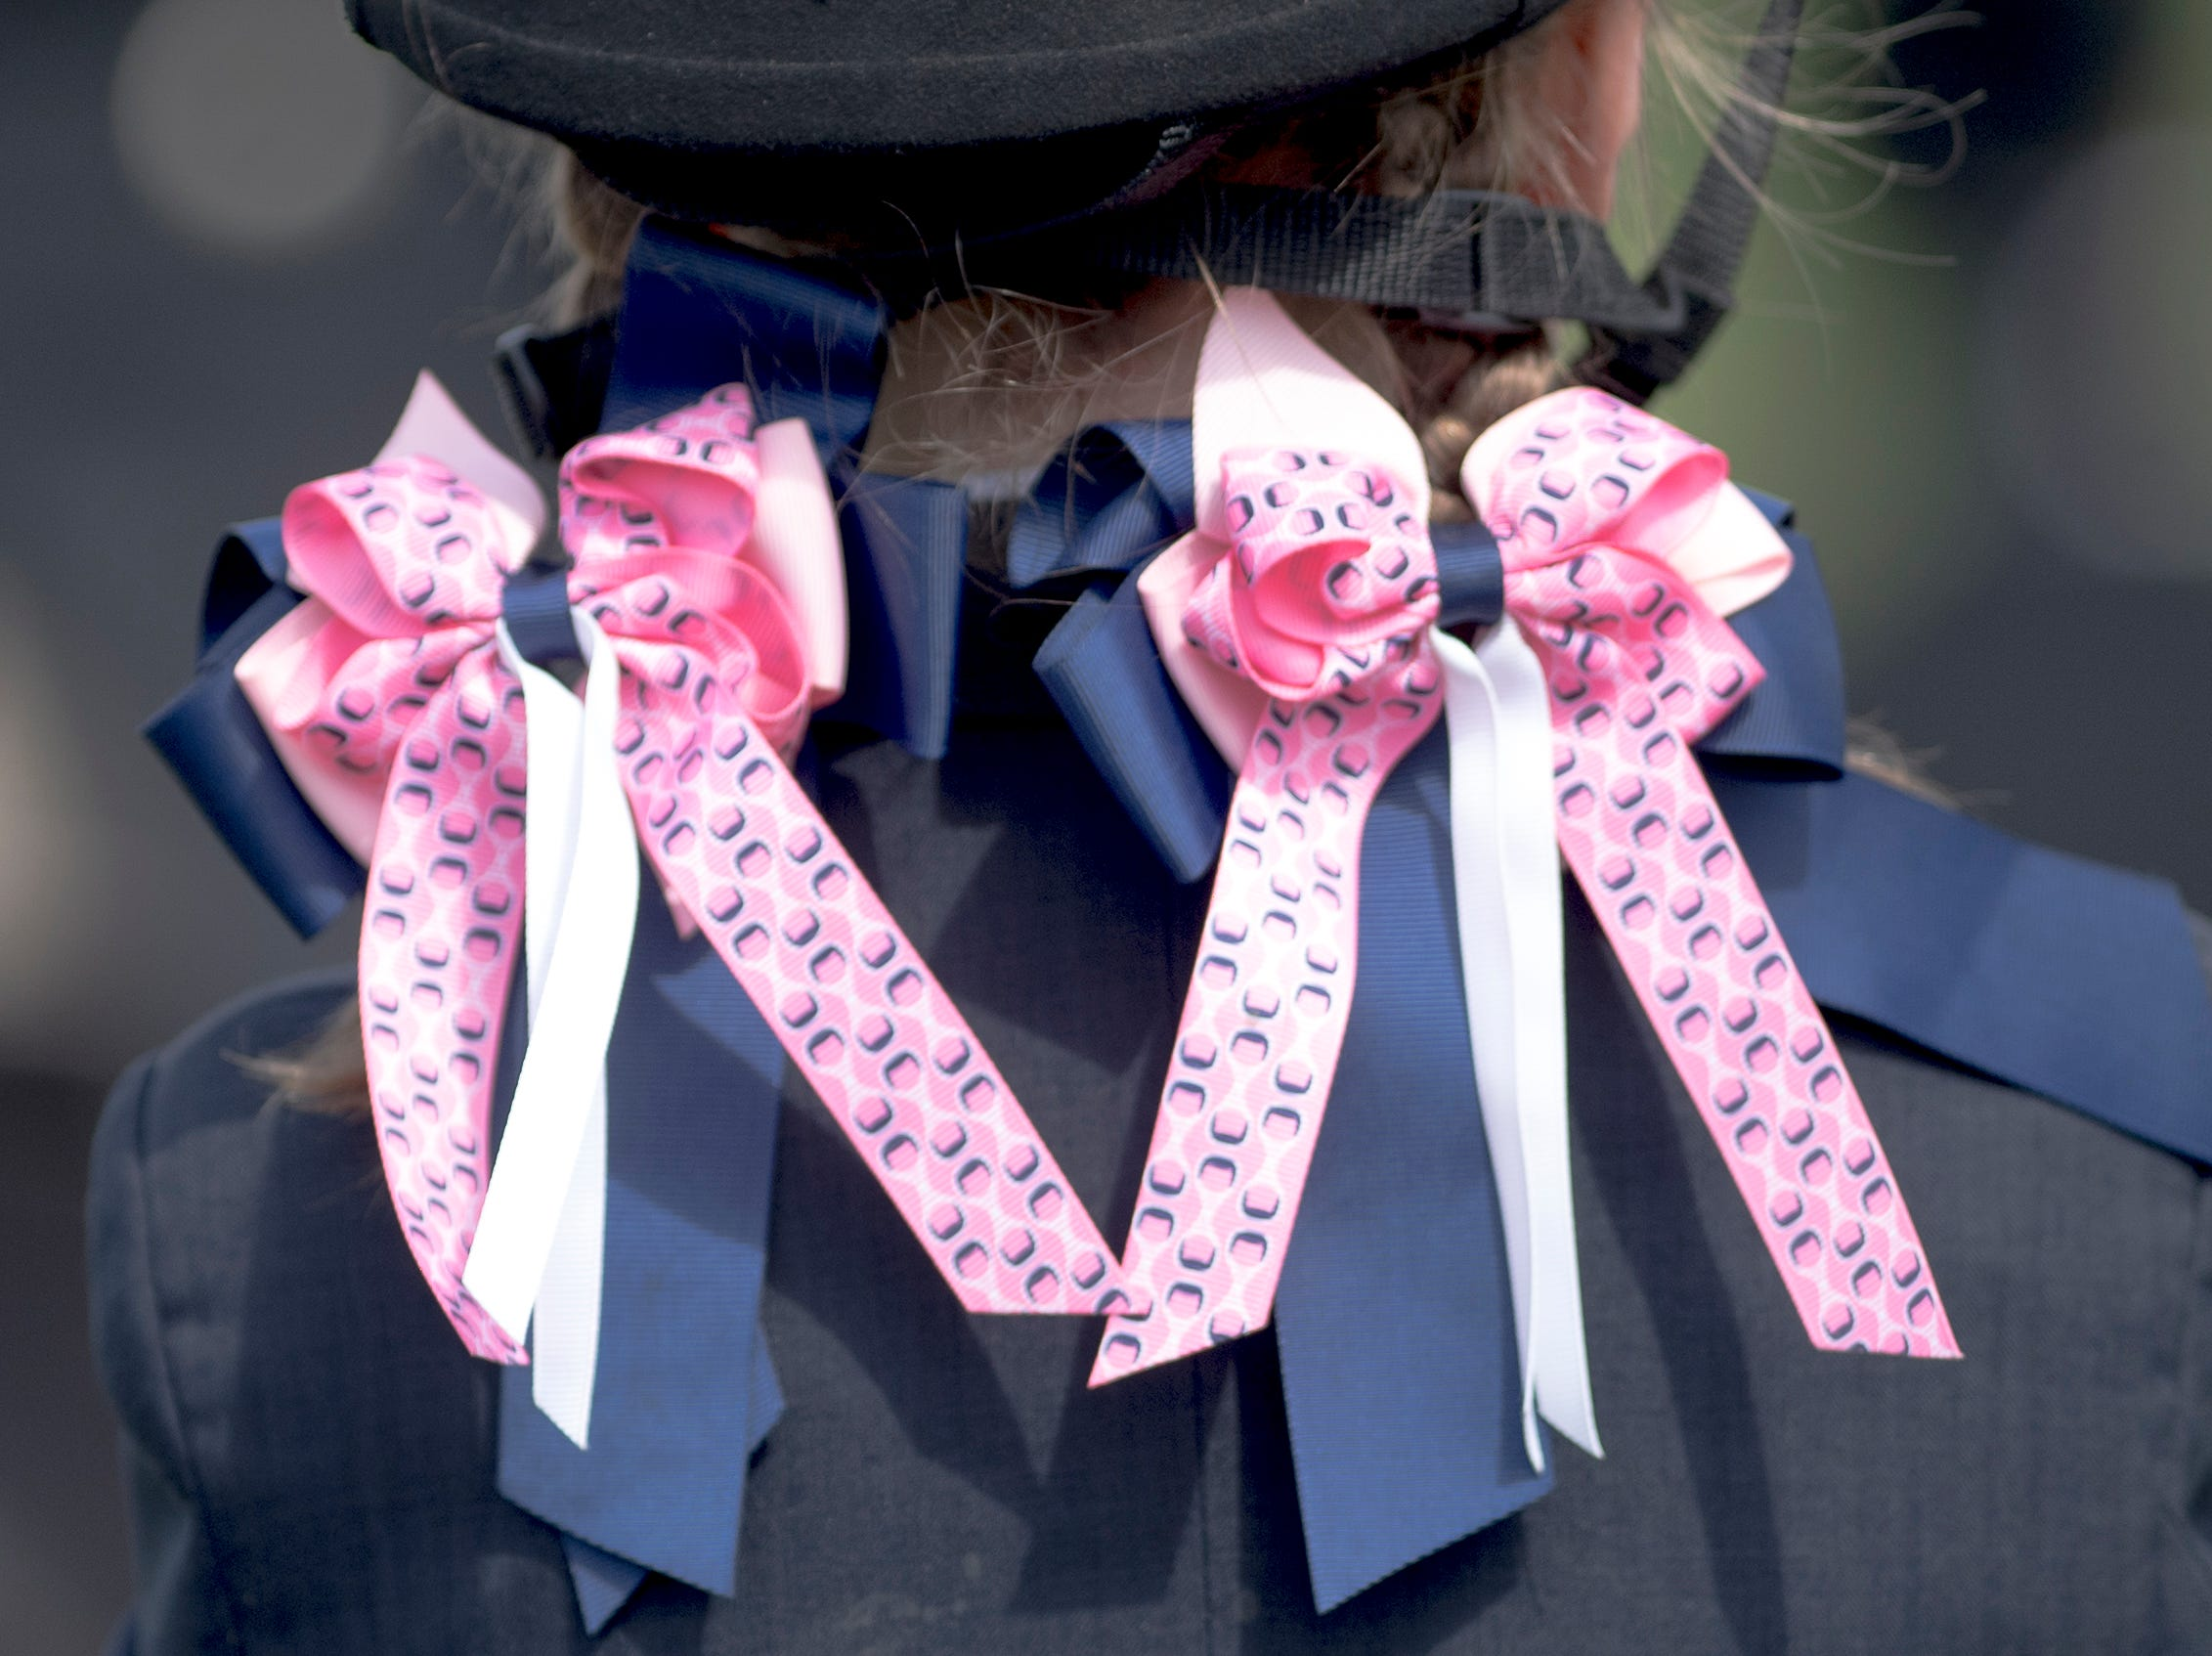 Tinsley Saunders, 7, of Knoxville, wears ribbons in her hair while riding her pony, Riot, during a fixture at Blackberry Ridge Farm in Greeneville, Tennessee on Saturday, March 30, 2019. Younger girls wear ribbons in their hair as a gesture of respect to the master huntsman.